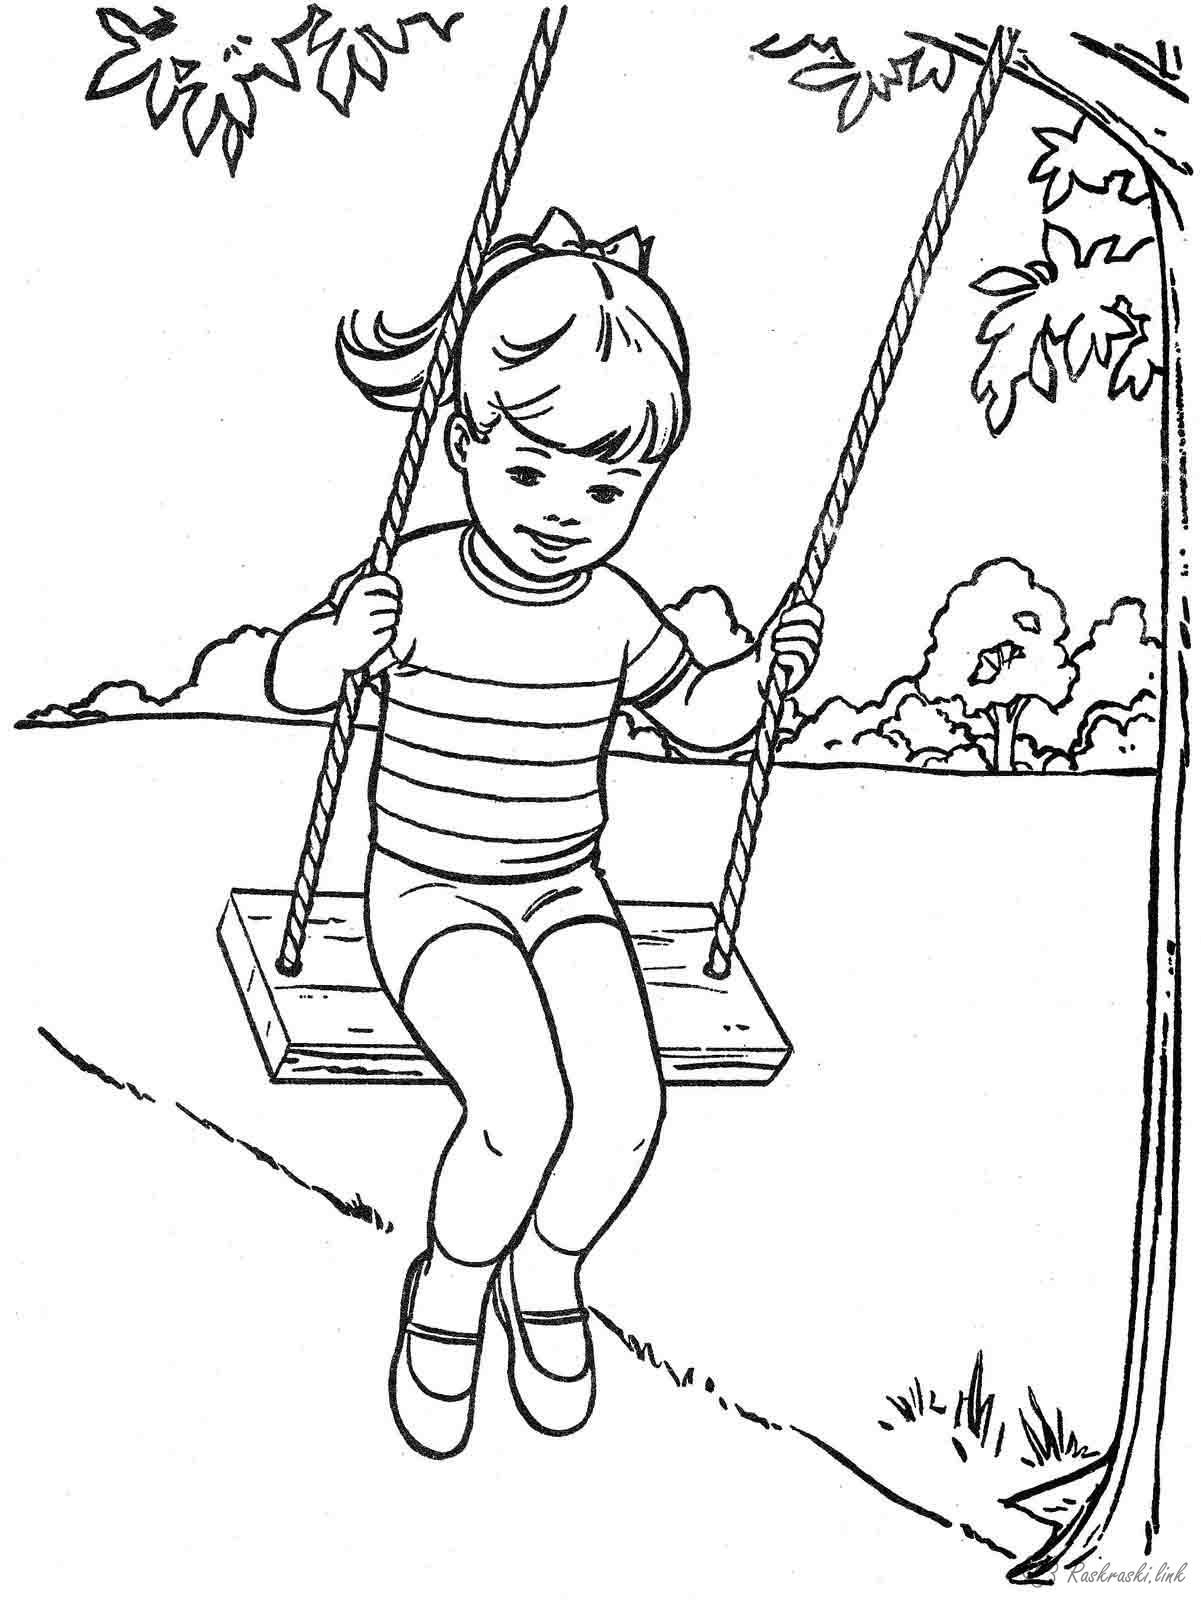 Tree swing coloring pages sketch coloring page for Swing set coloring page